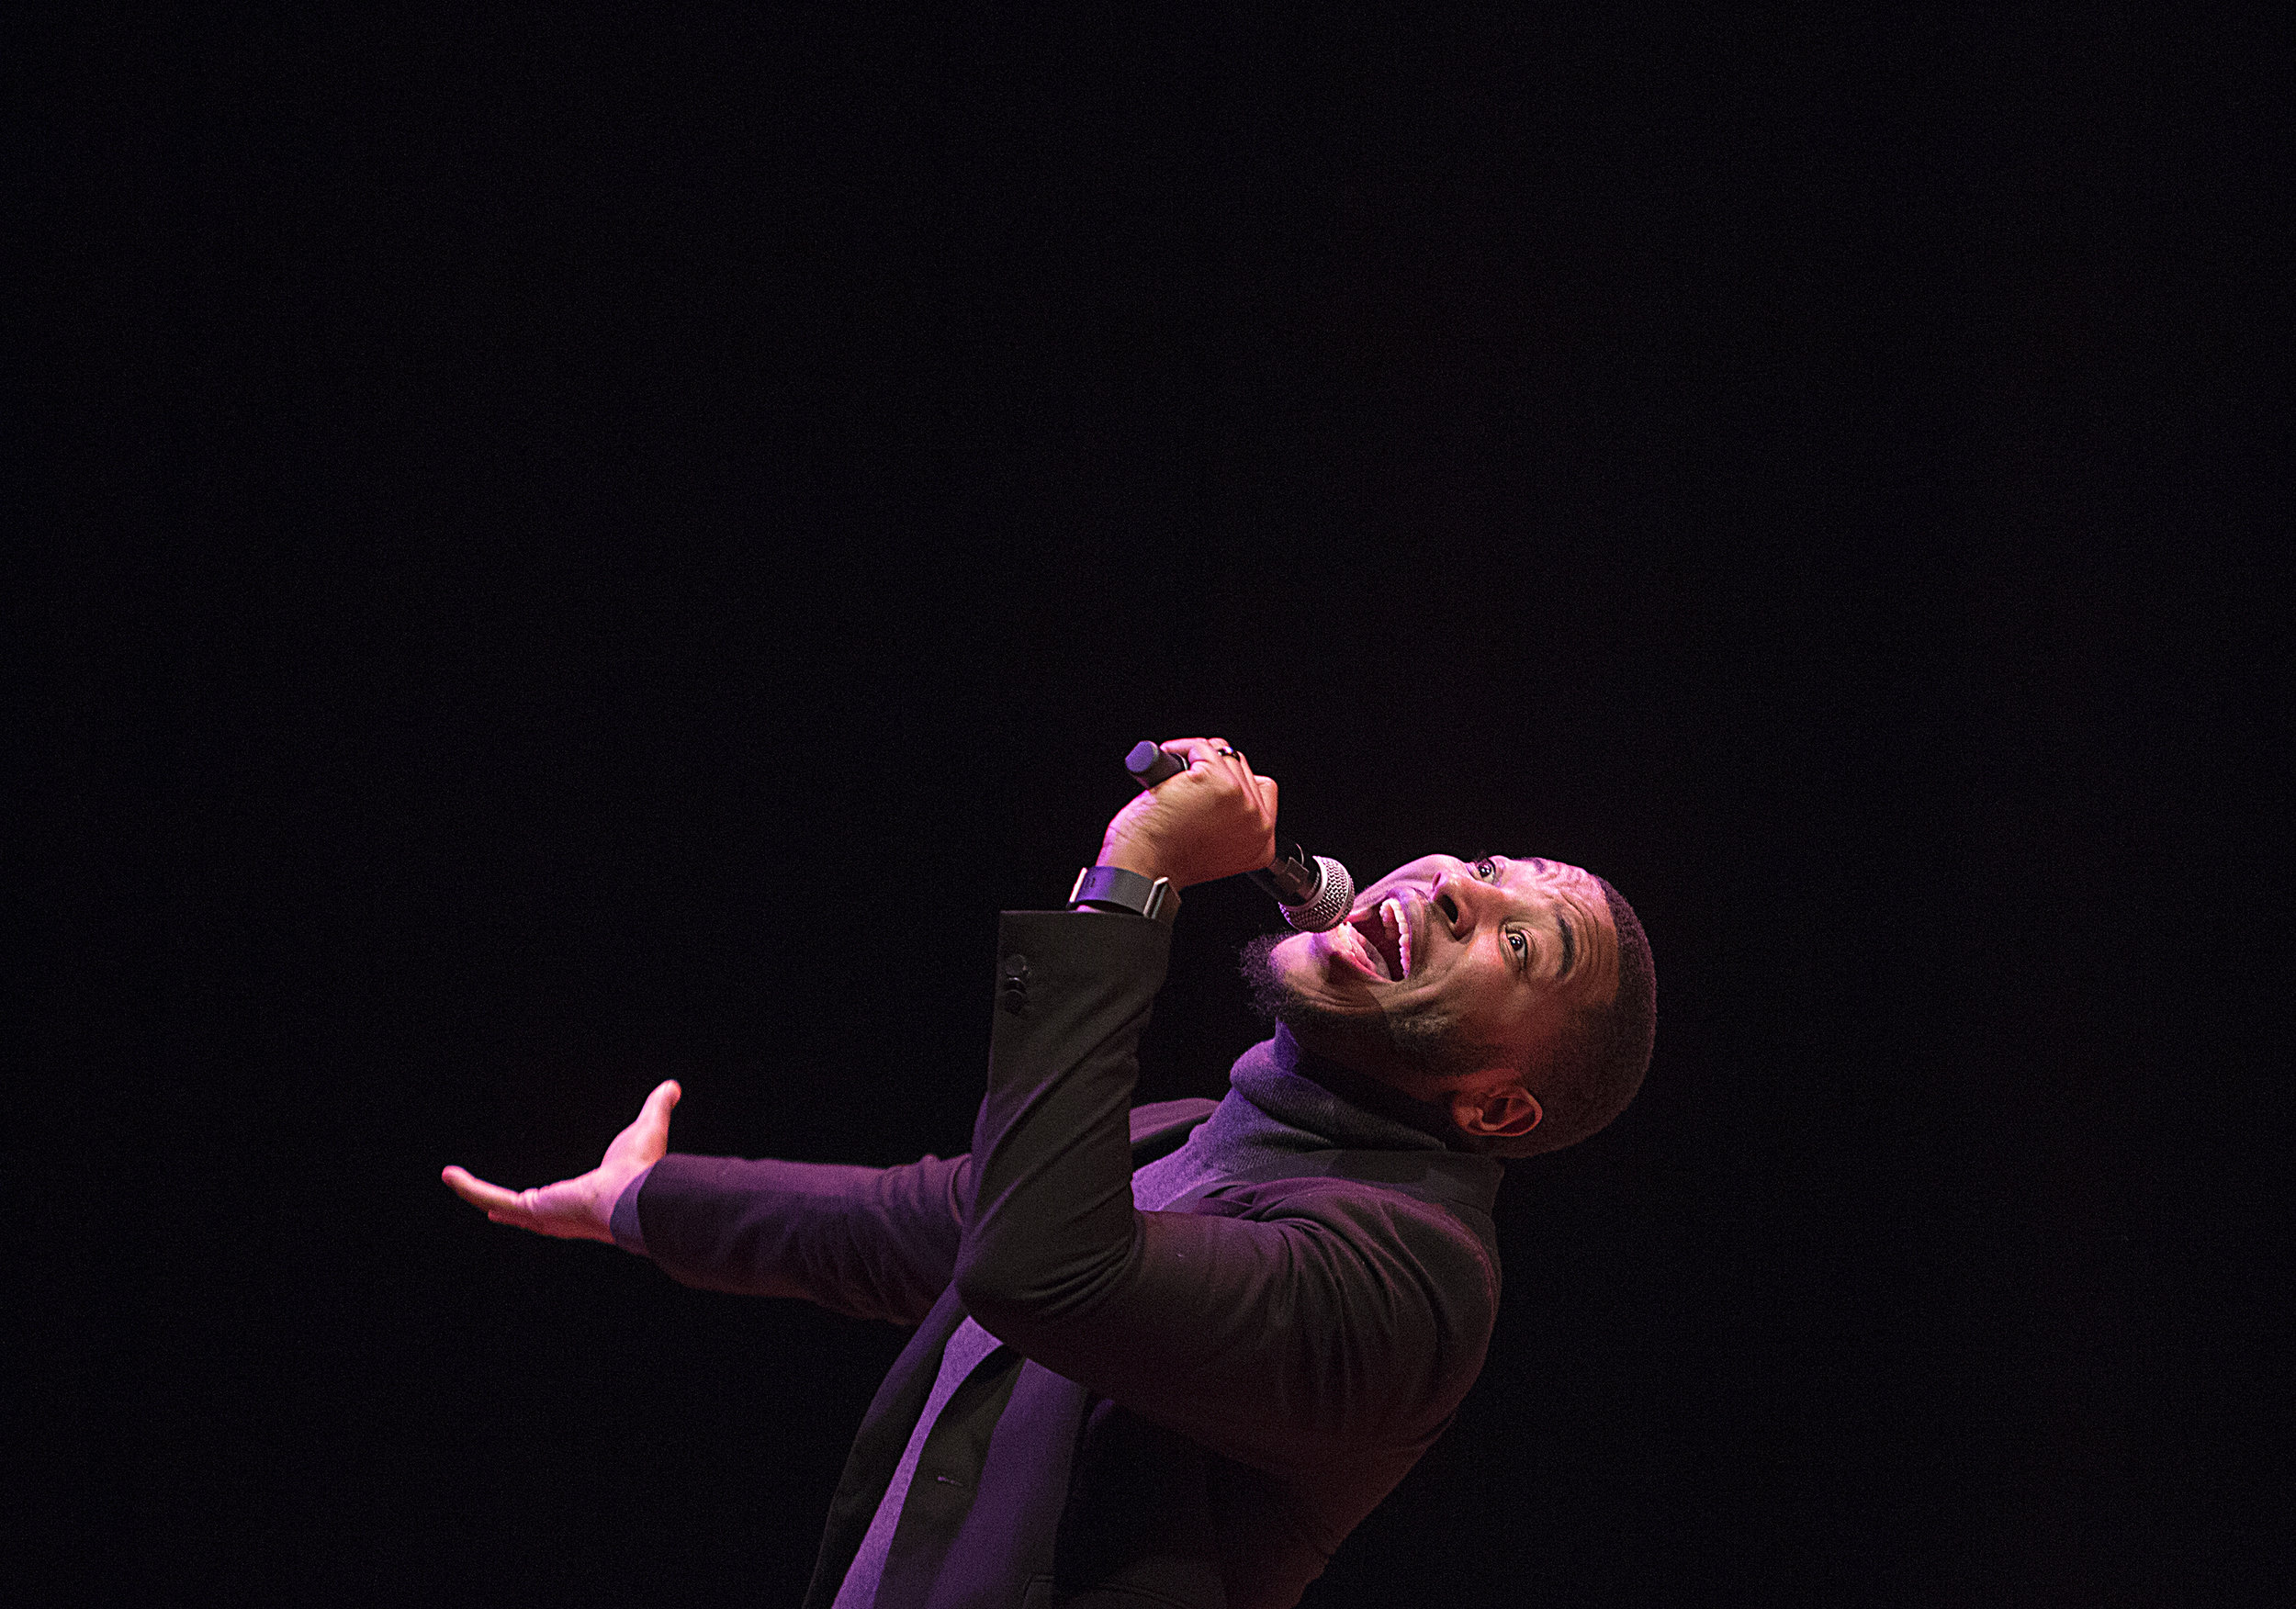 North Minneapolis's own Jovonta Patton, a Billboard-charting gospel artist, sings at the University of Minnesota's Ted Mann Concert Hall during a musical event celebrating the life of  Dr. Martin Luther King Jr.